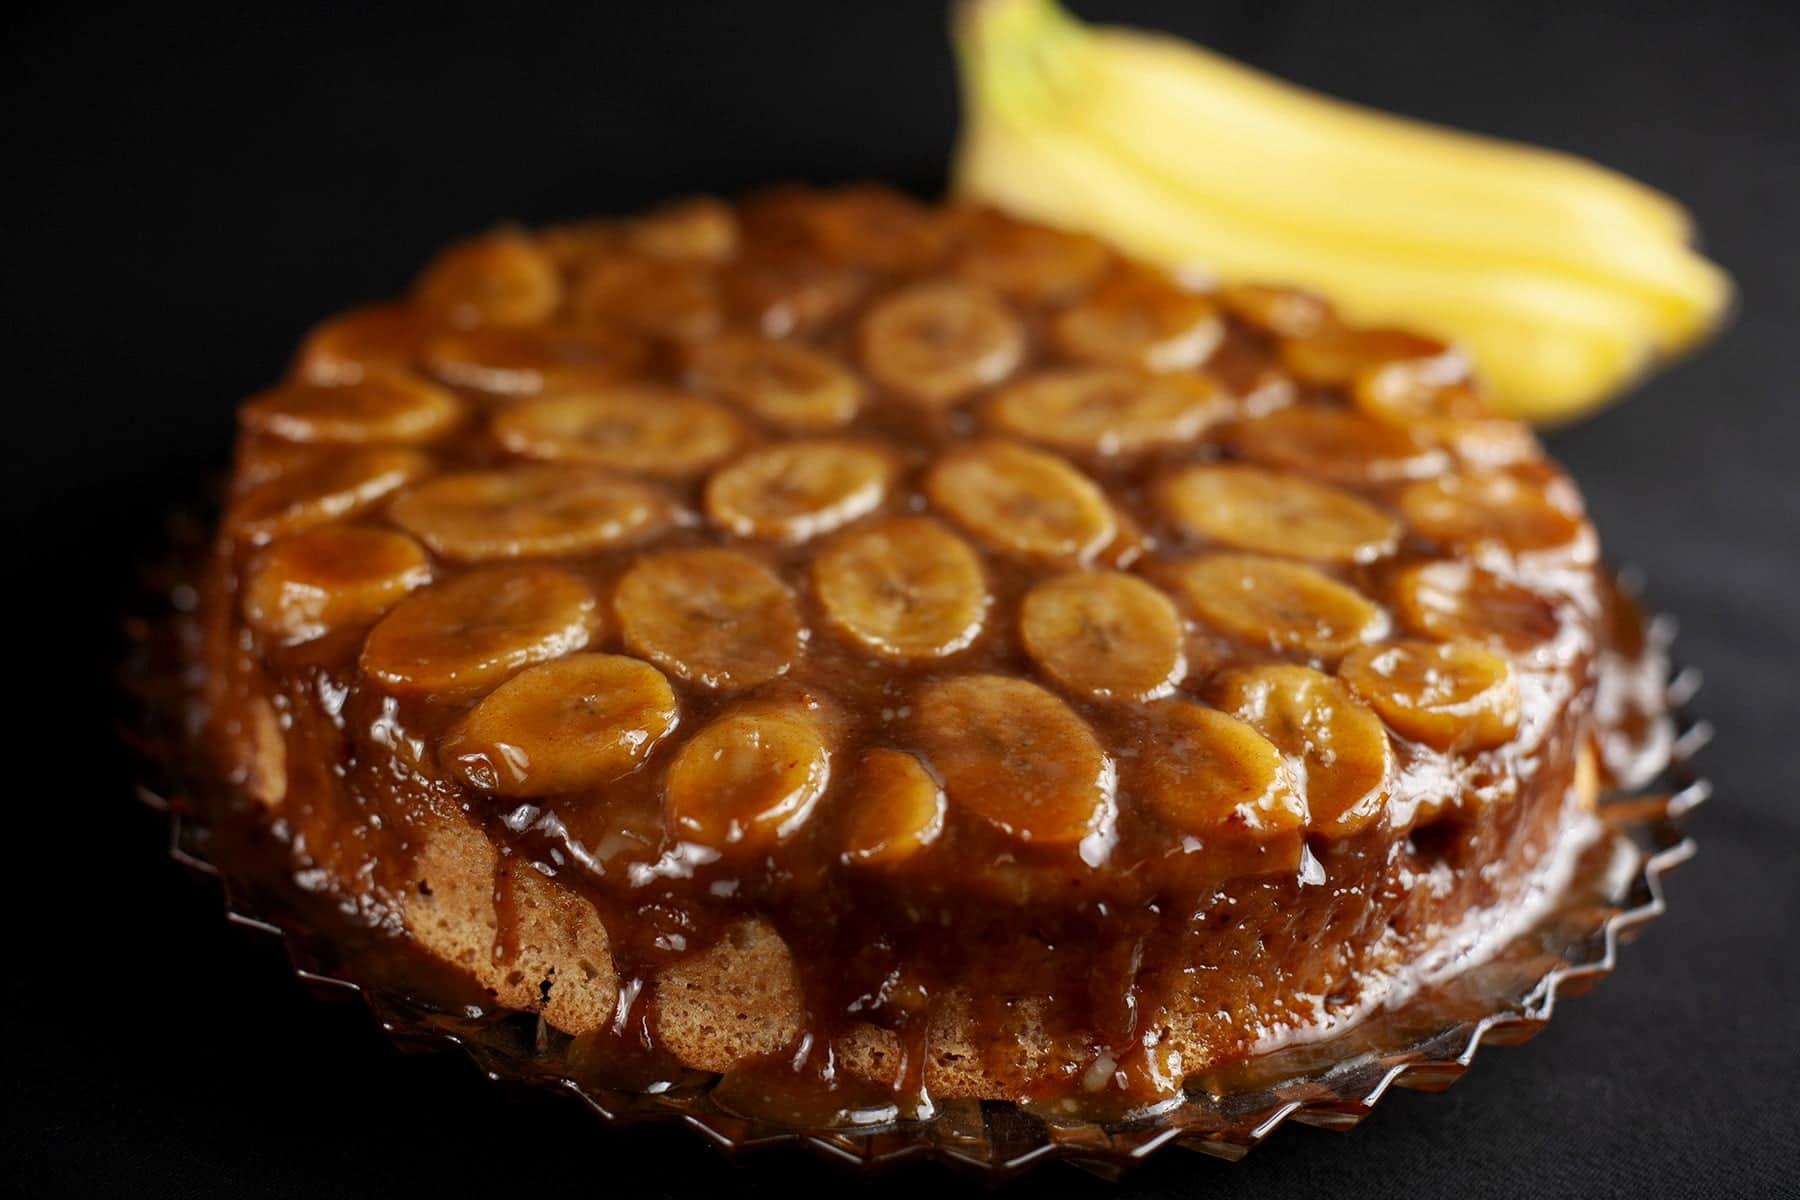 A bananas foster upside down cake: A large round cinnamon rum cake, topped with bananas and a cinnamon rum caramel... upside-down cake style.